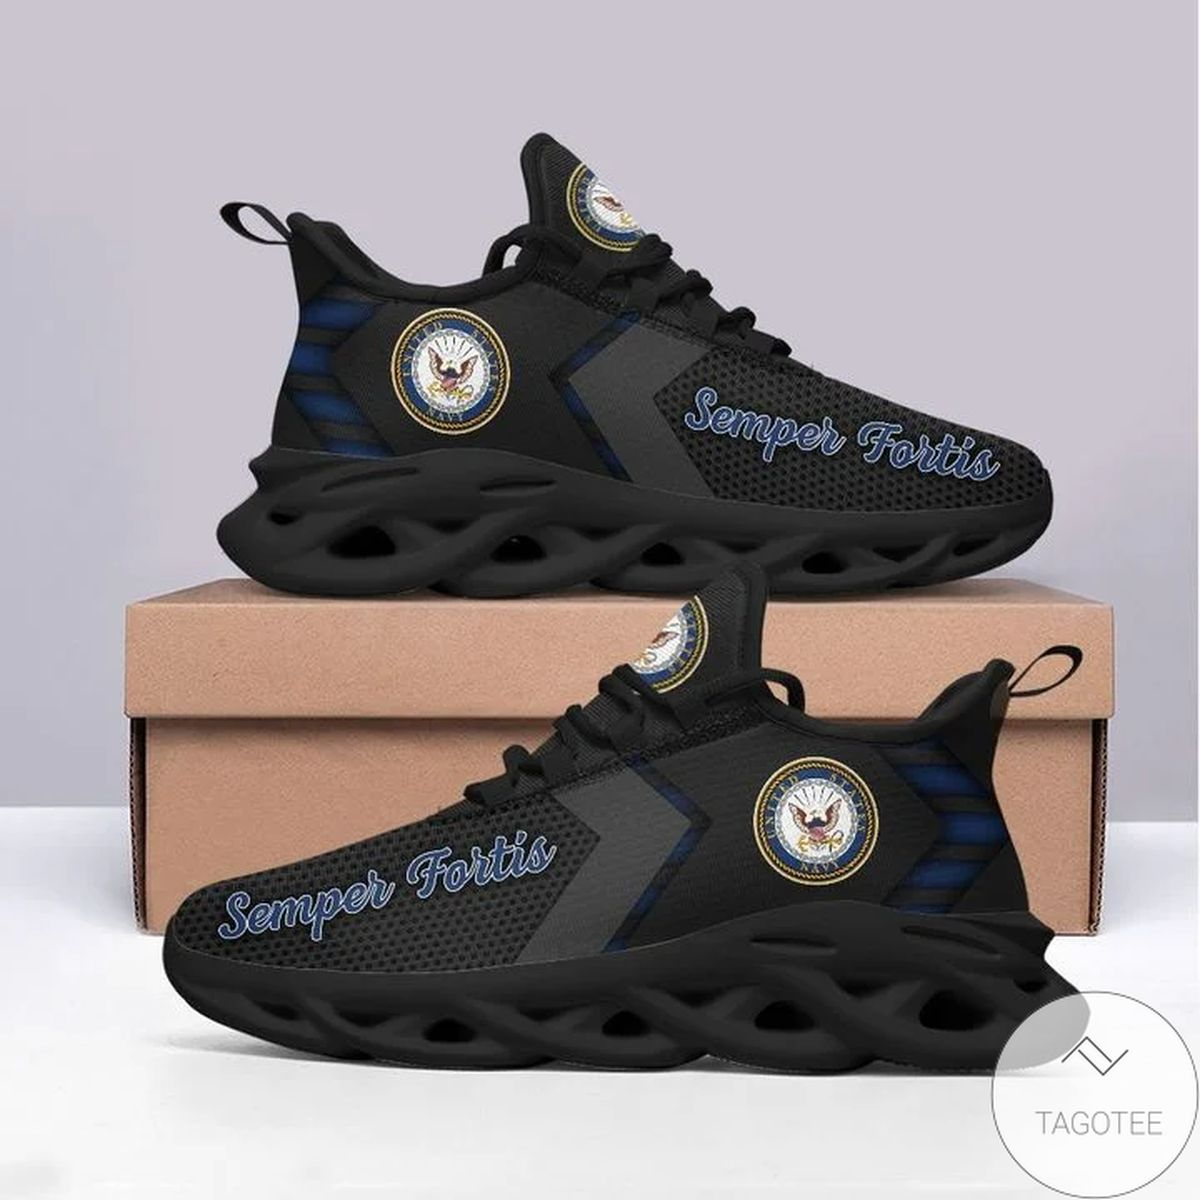 US Navy Sneaker Max Soul Shoes